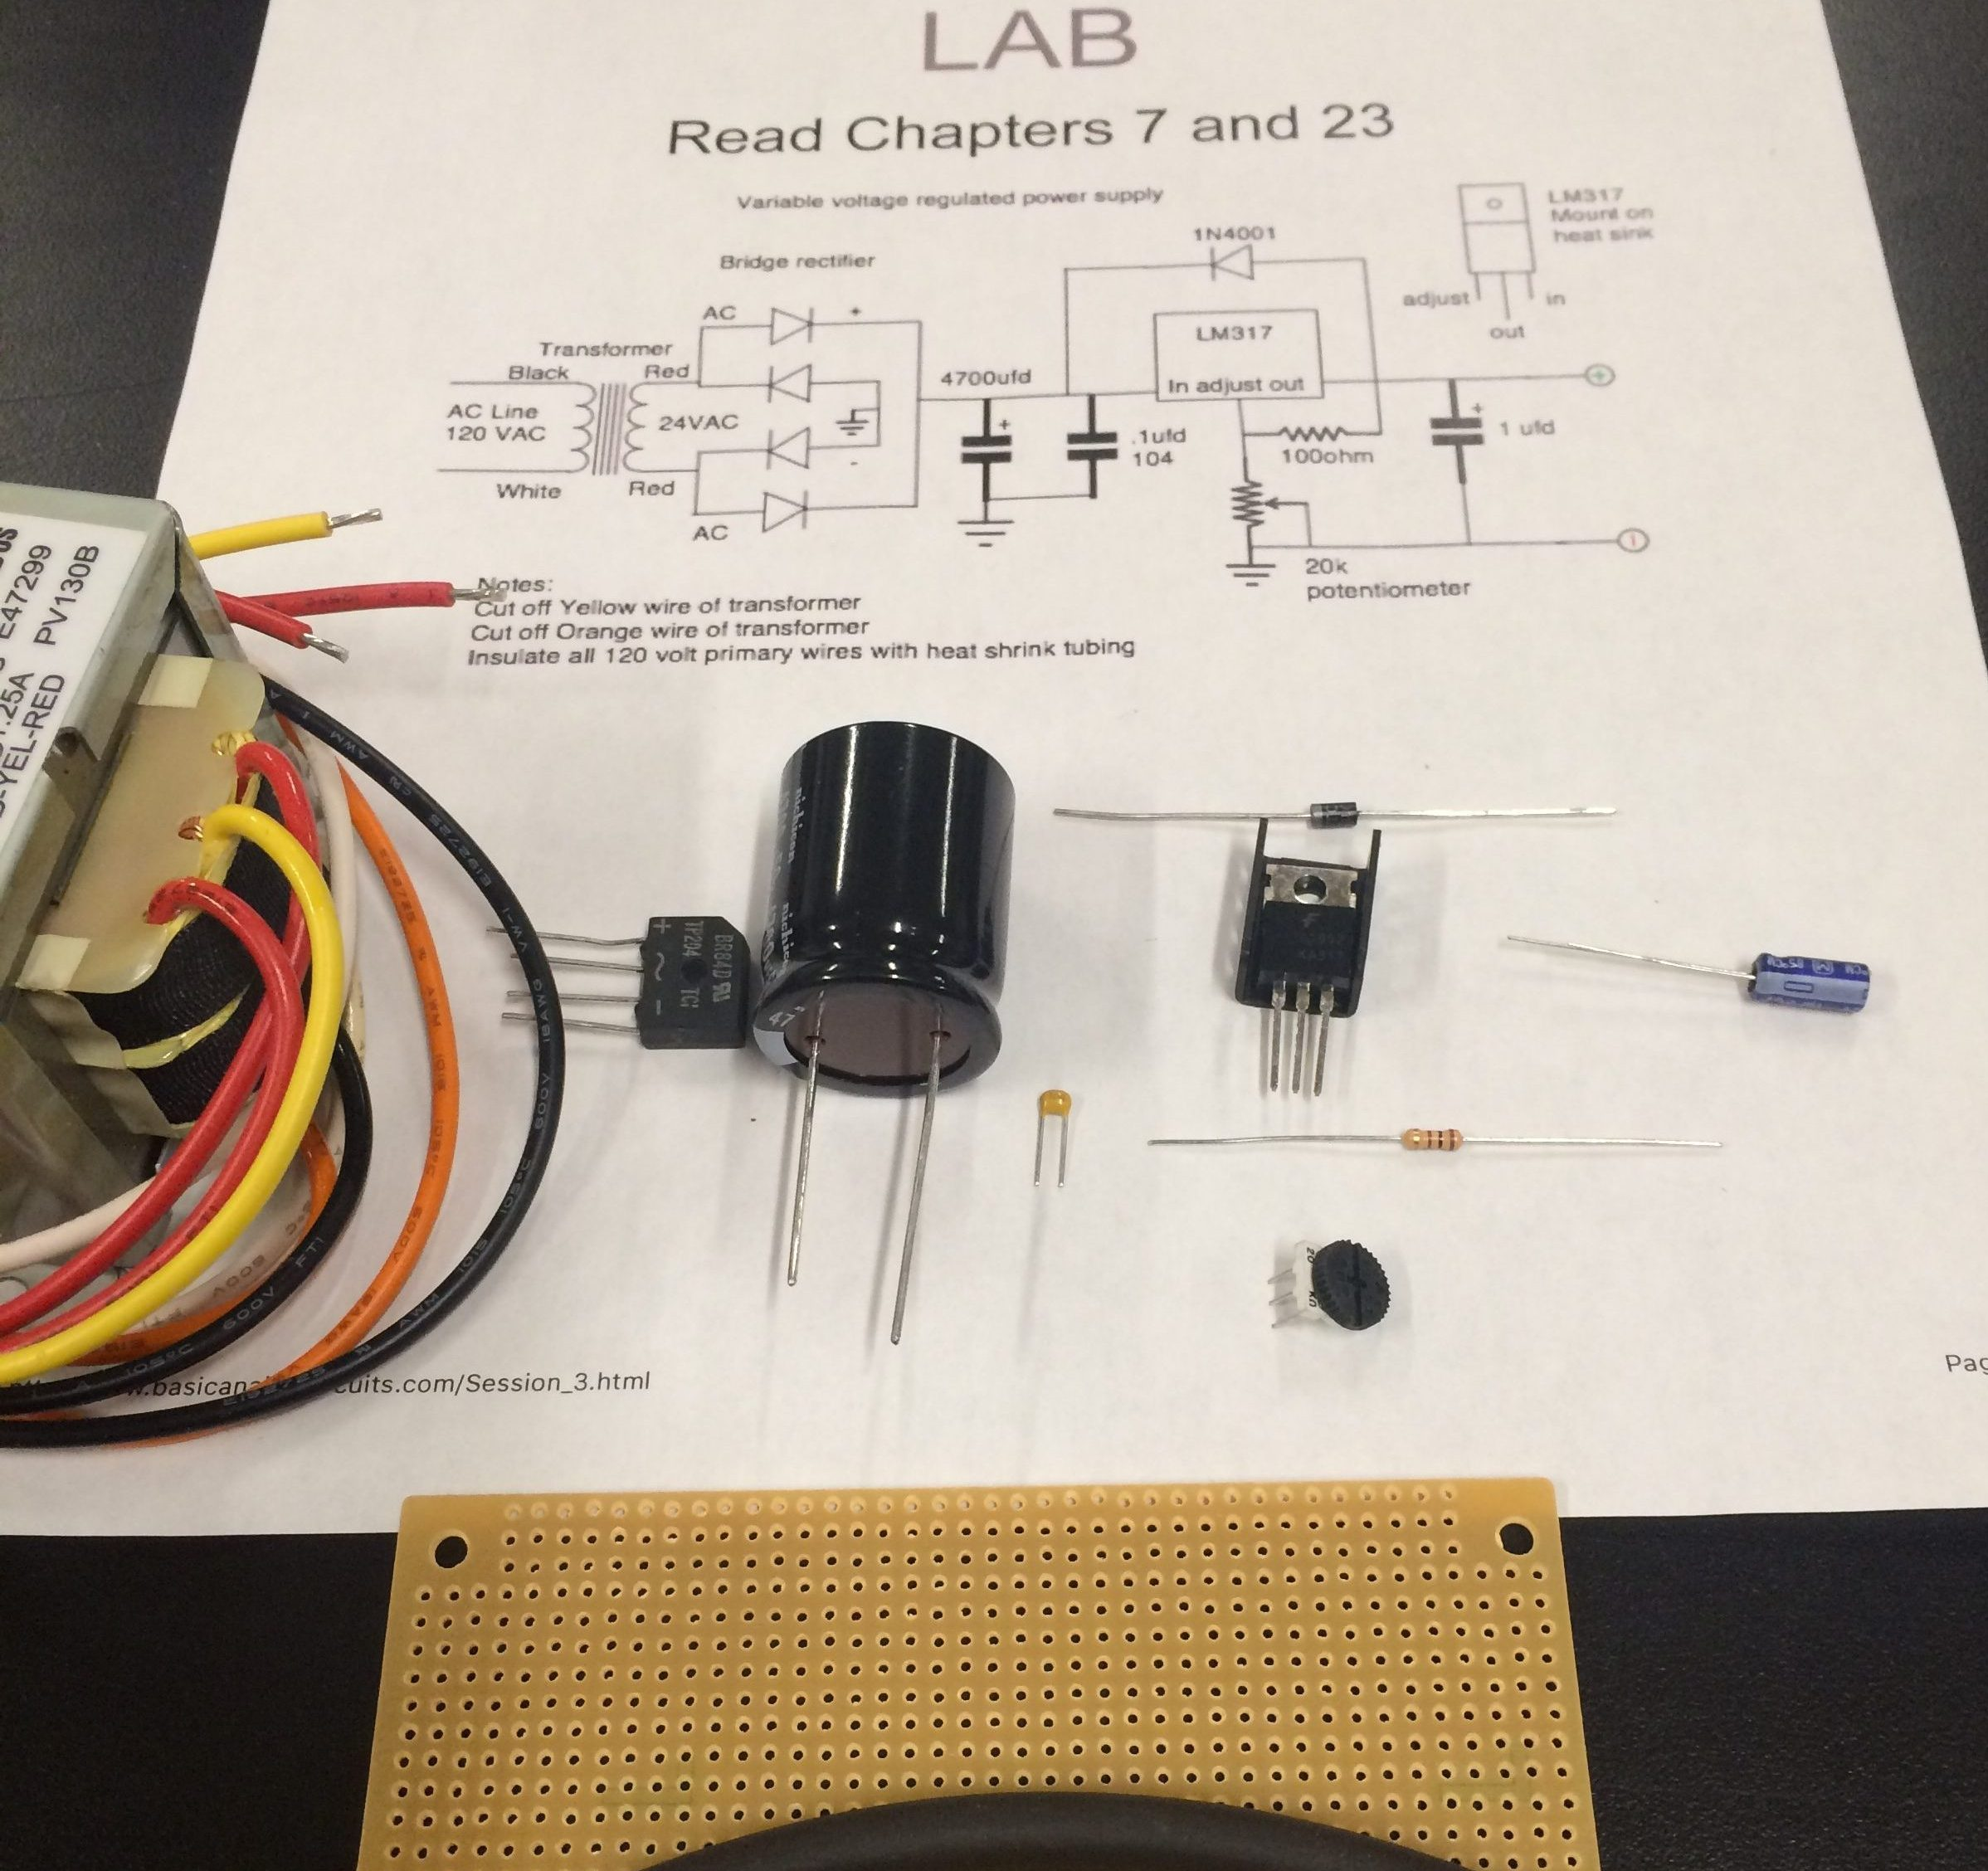 Led Timing Light Circuit Via Andrew Davidhazy